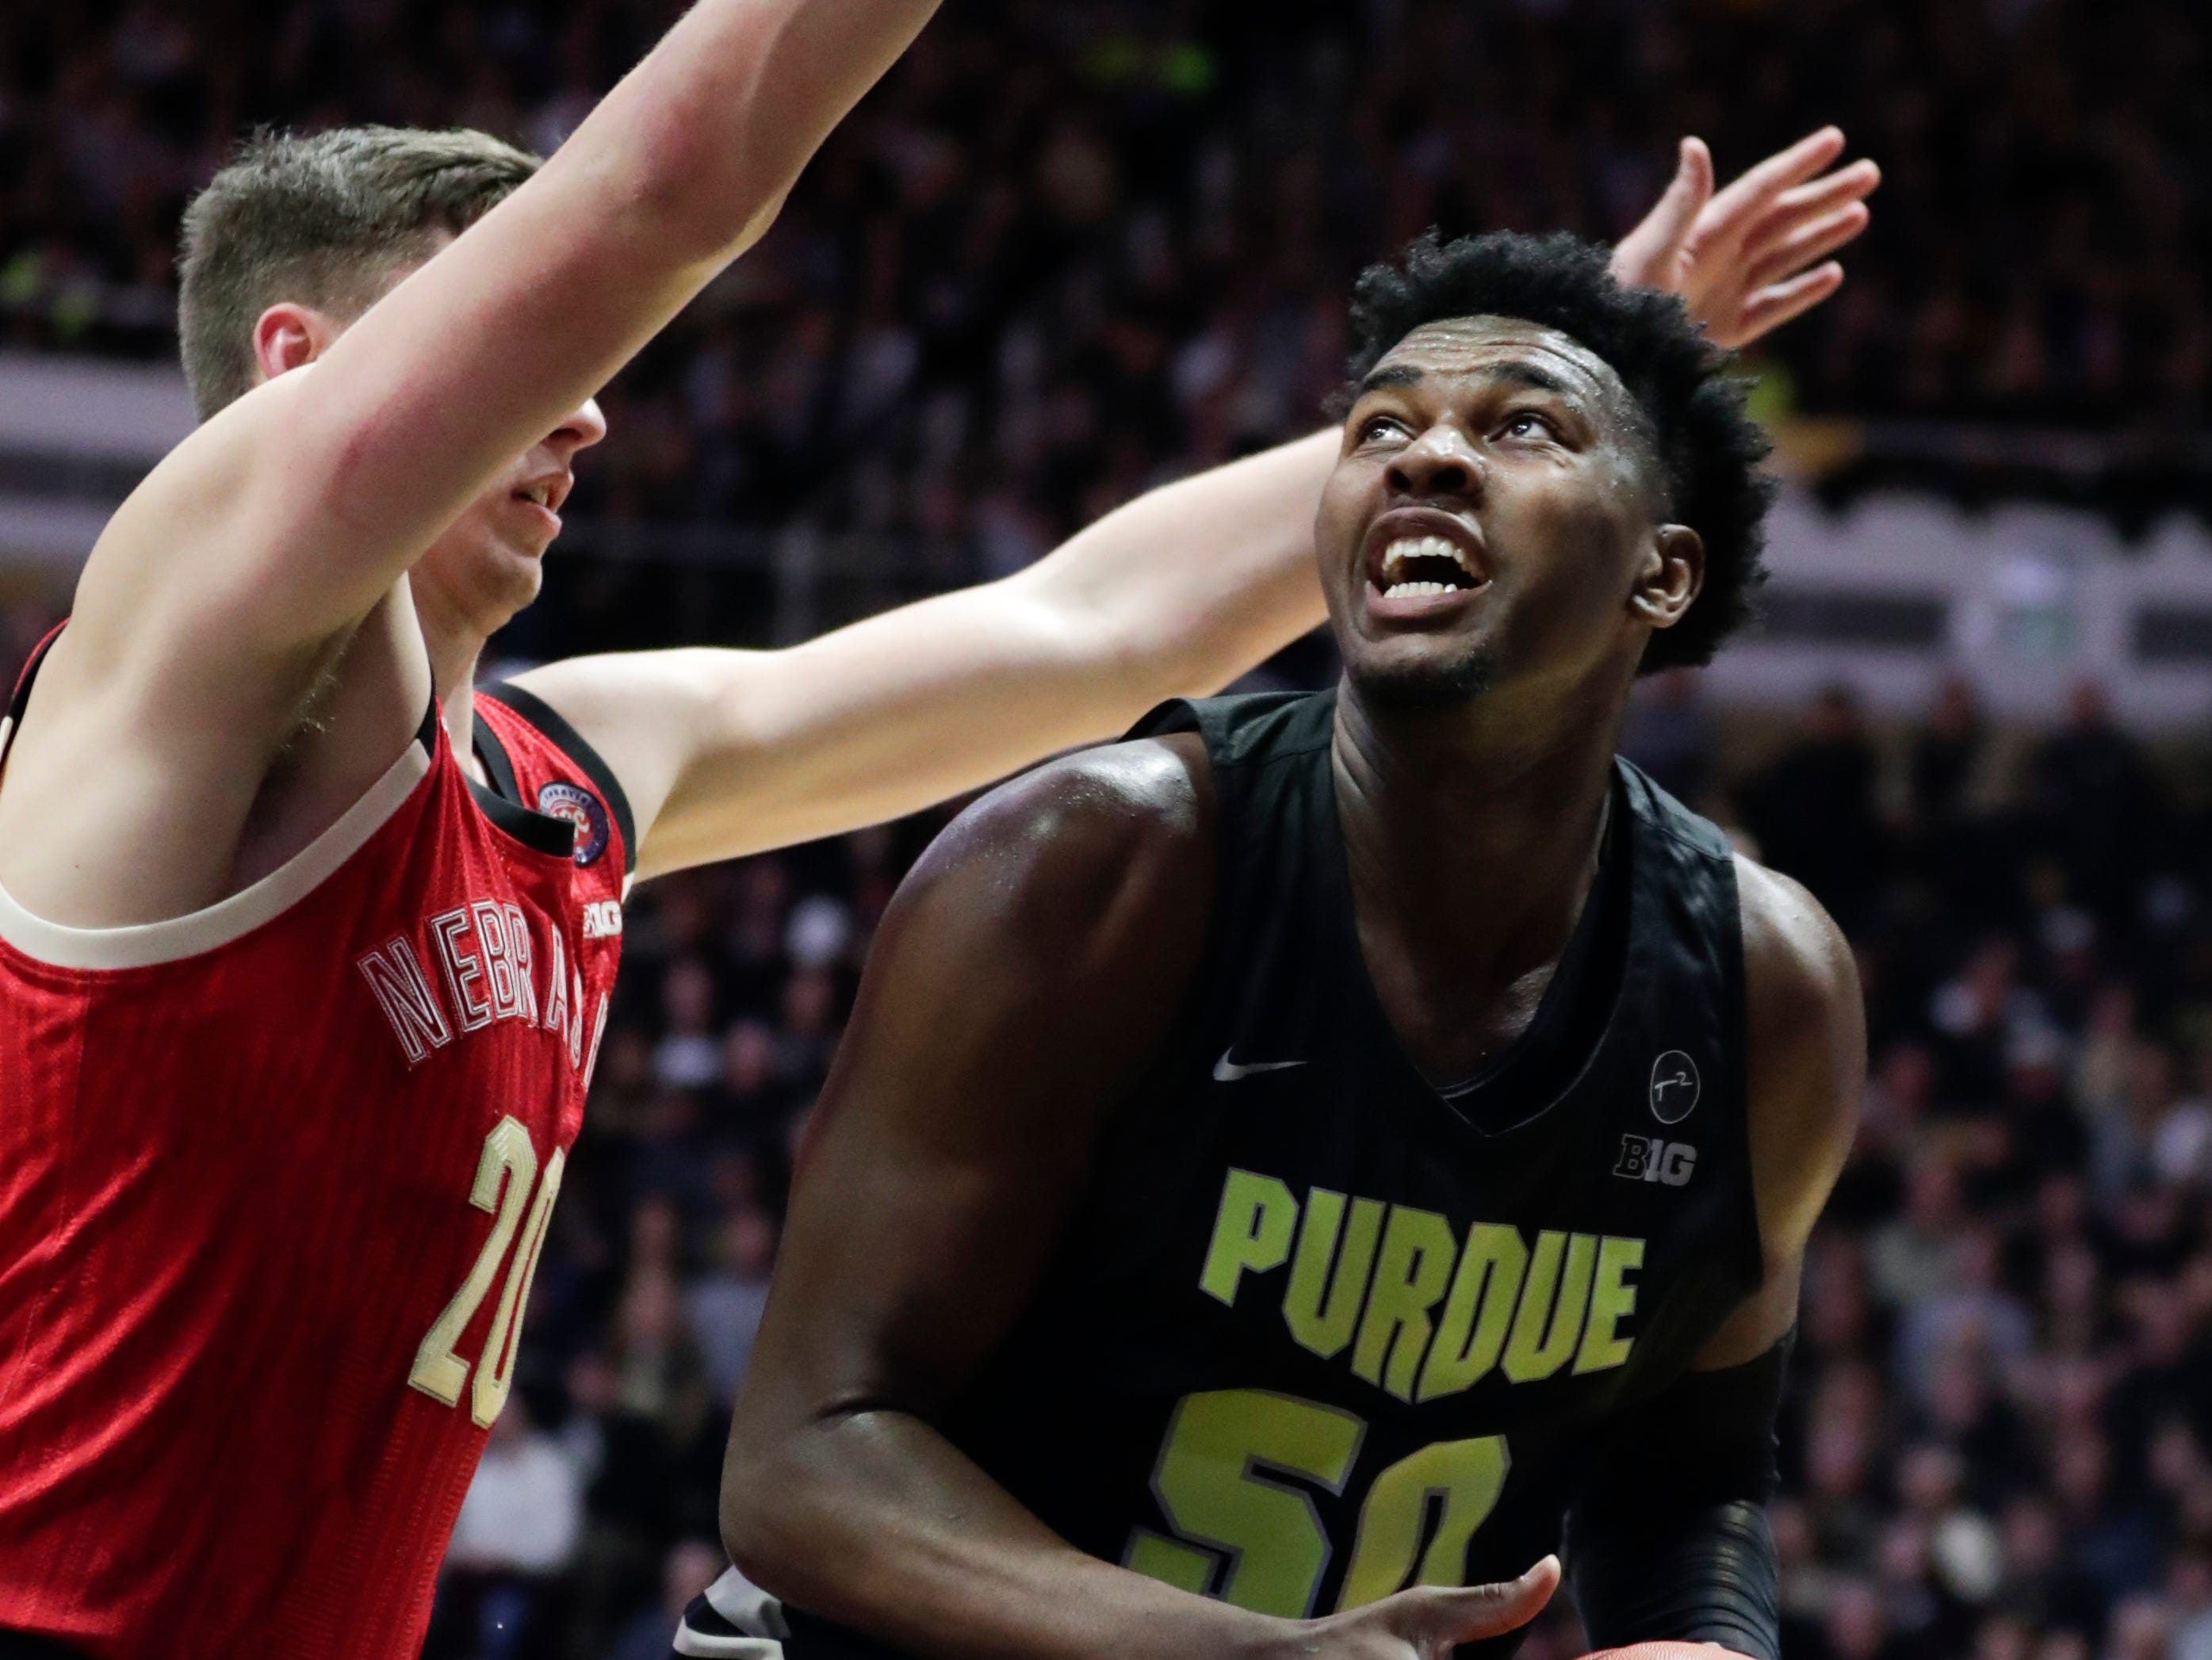 Purdue forward Trevion Williams (50) looks to shoot over Nebraska forward Tanner Borchardt (20) during the first half.